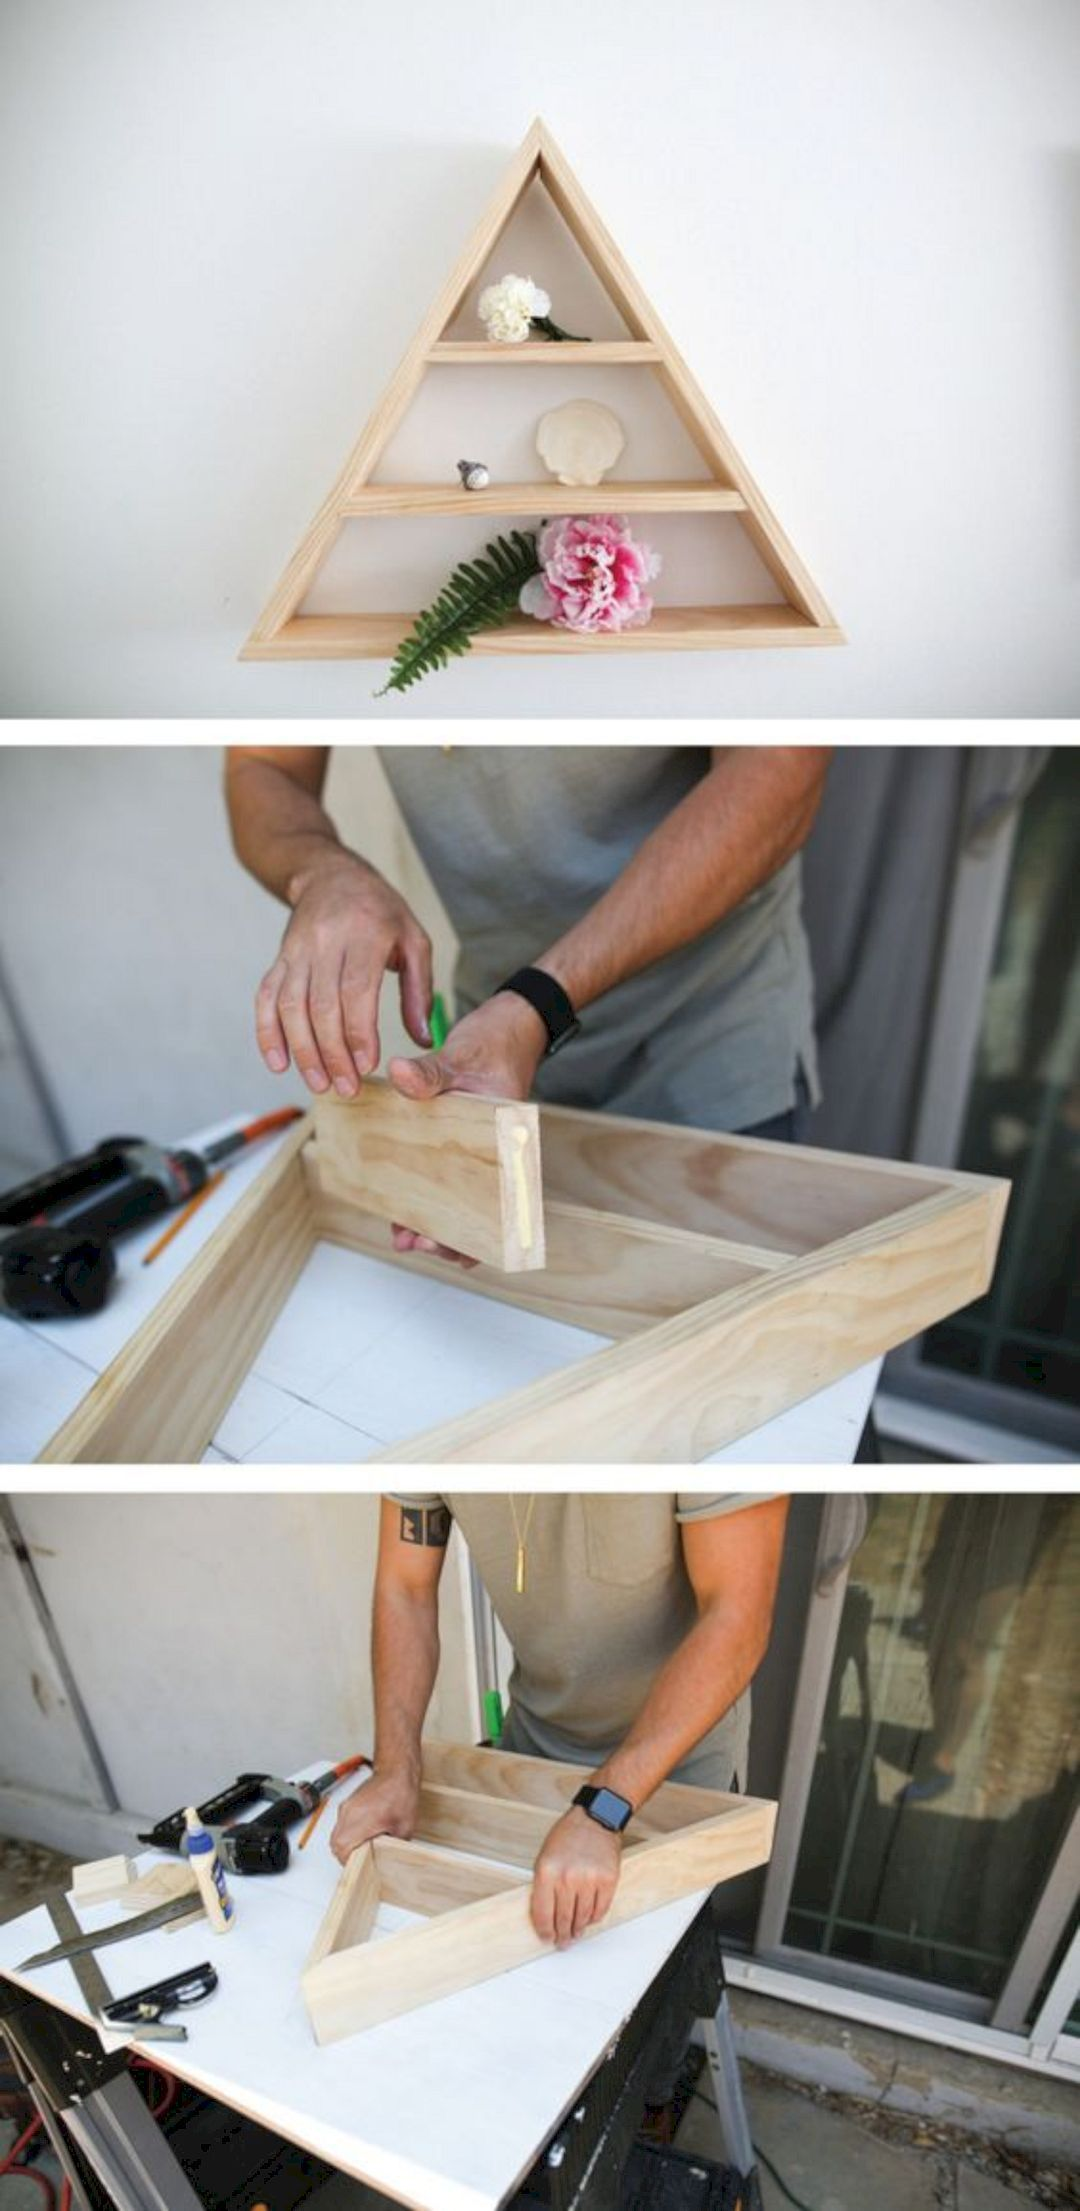 16 Creative DIY Home Decorating Ideas https://www ... on hide television design ideas, bedroom designs, western bedroom ideas, bedroom wall art, shelving ideas, bedroom shelf for candles, storage for small bedrooms ideas, beautiful bedroom ideas,